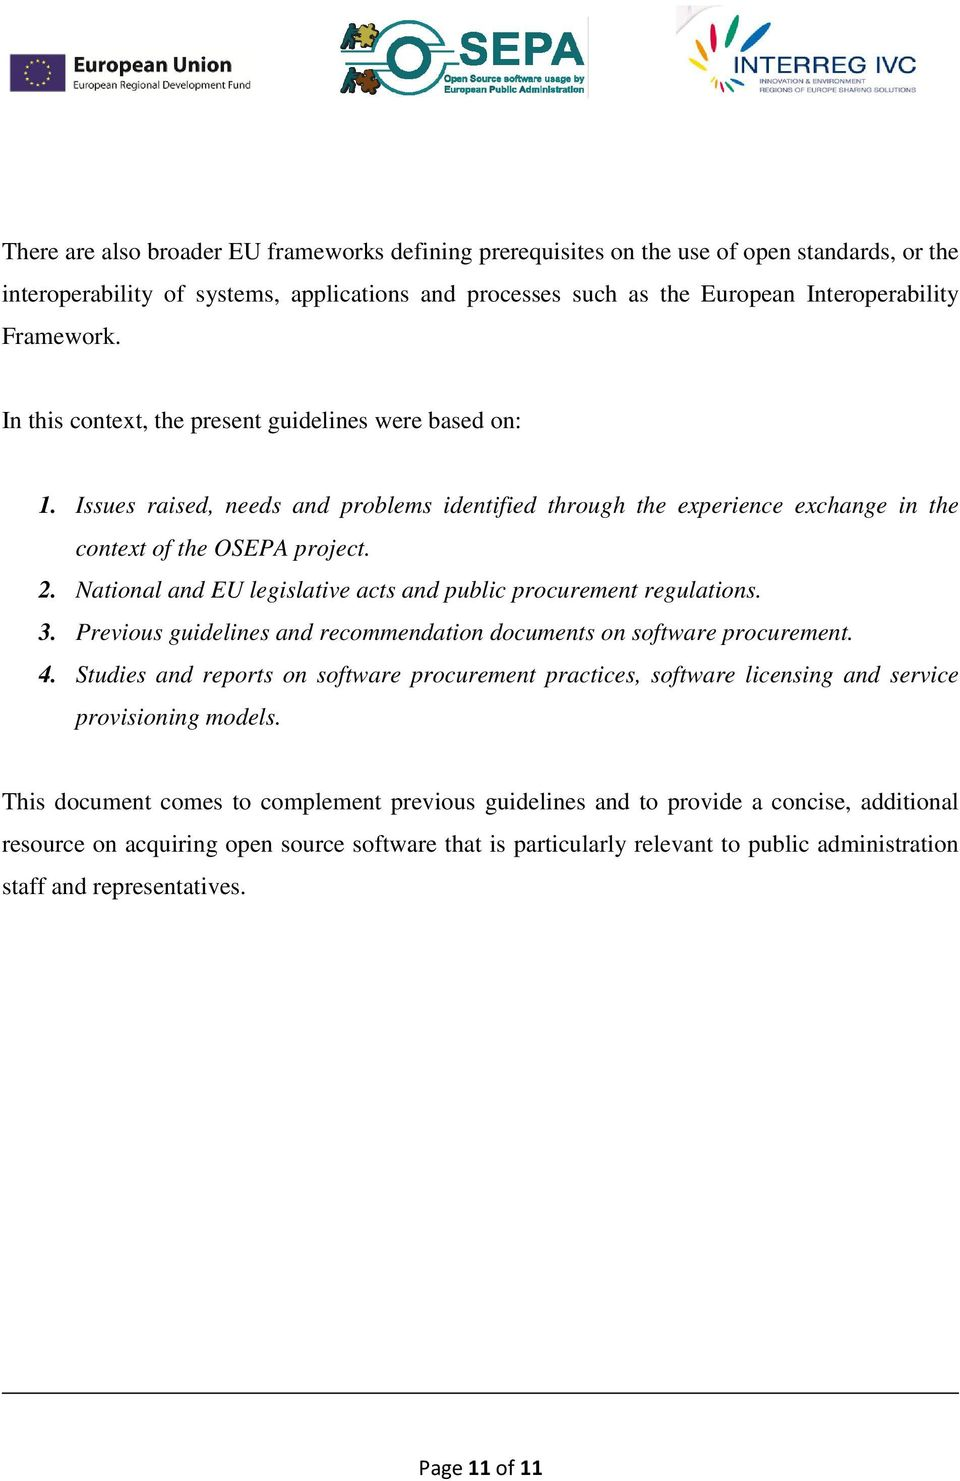 National and EU legislative acts and public procurement regulations. 3. Previous guidelines and recommendation documents on software procurement. 4.